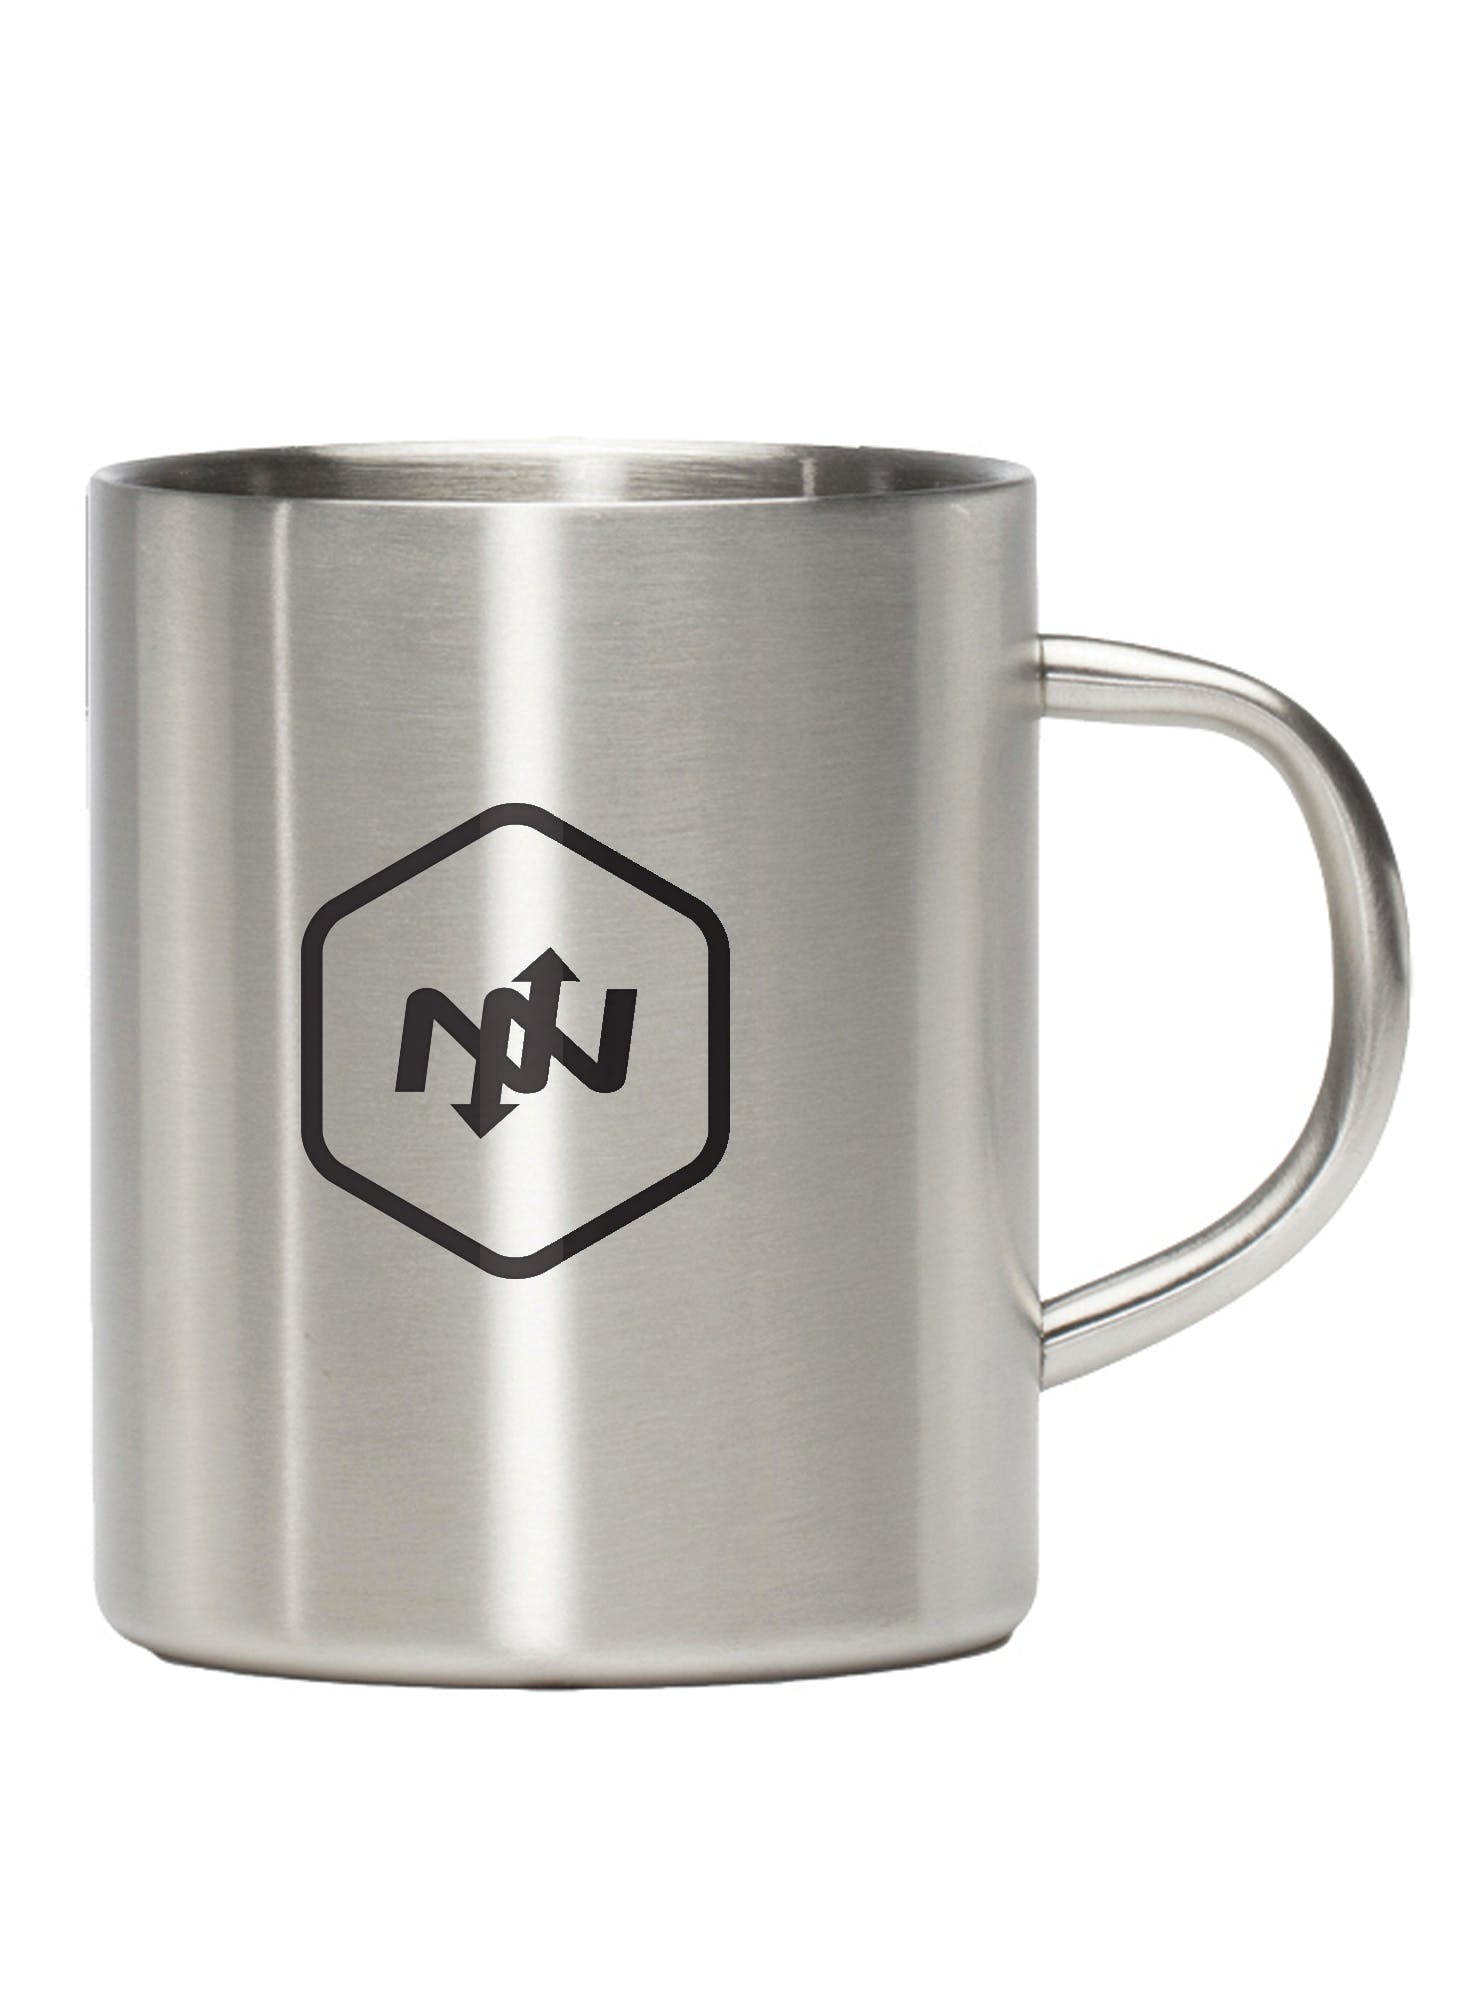 Onnit x MIZU Camp Cup Stainless Steel.